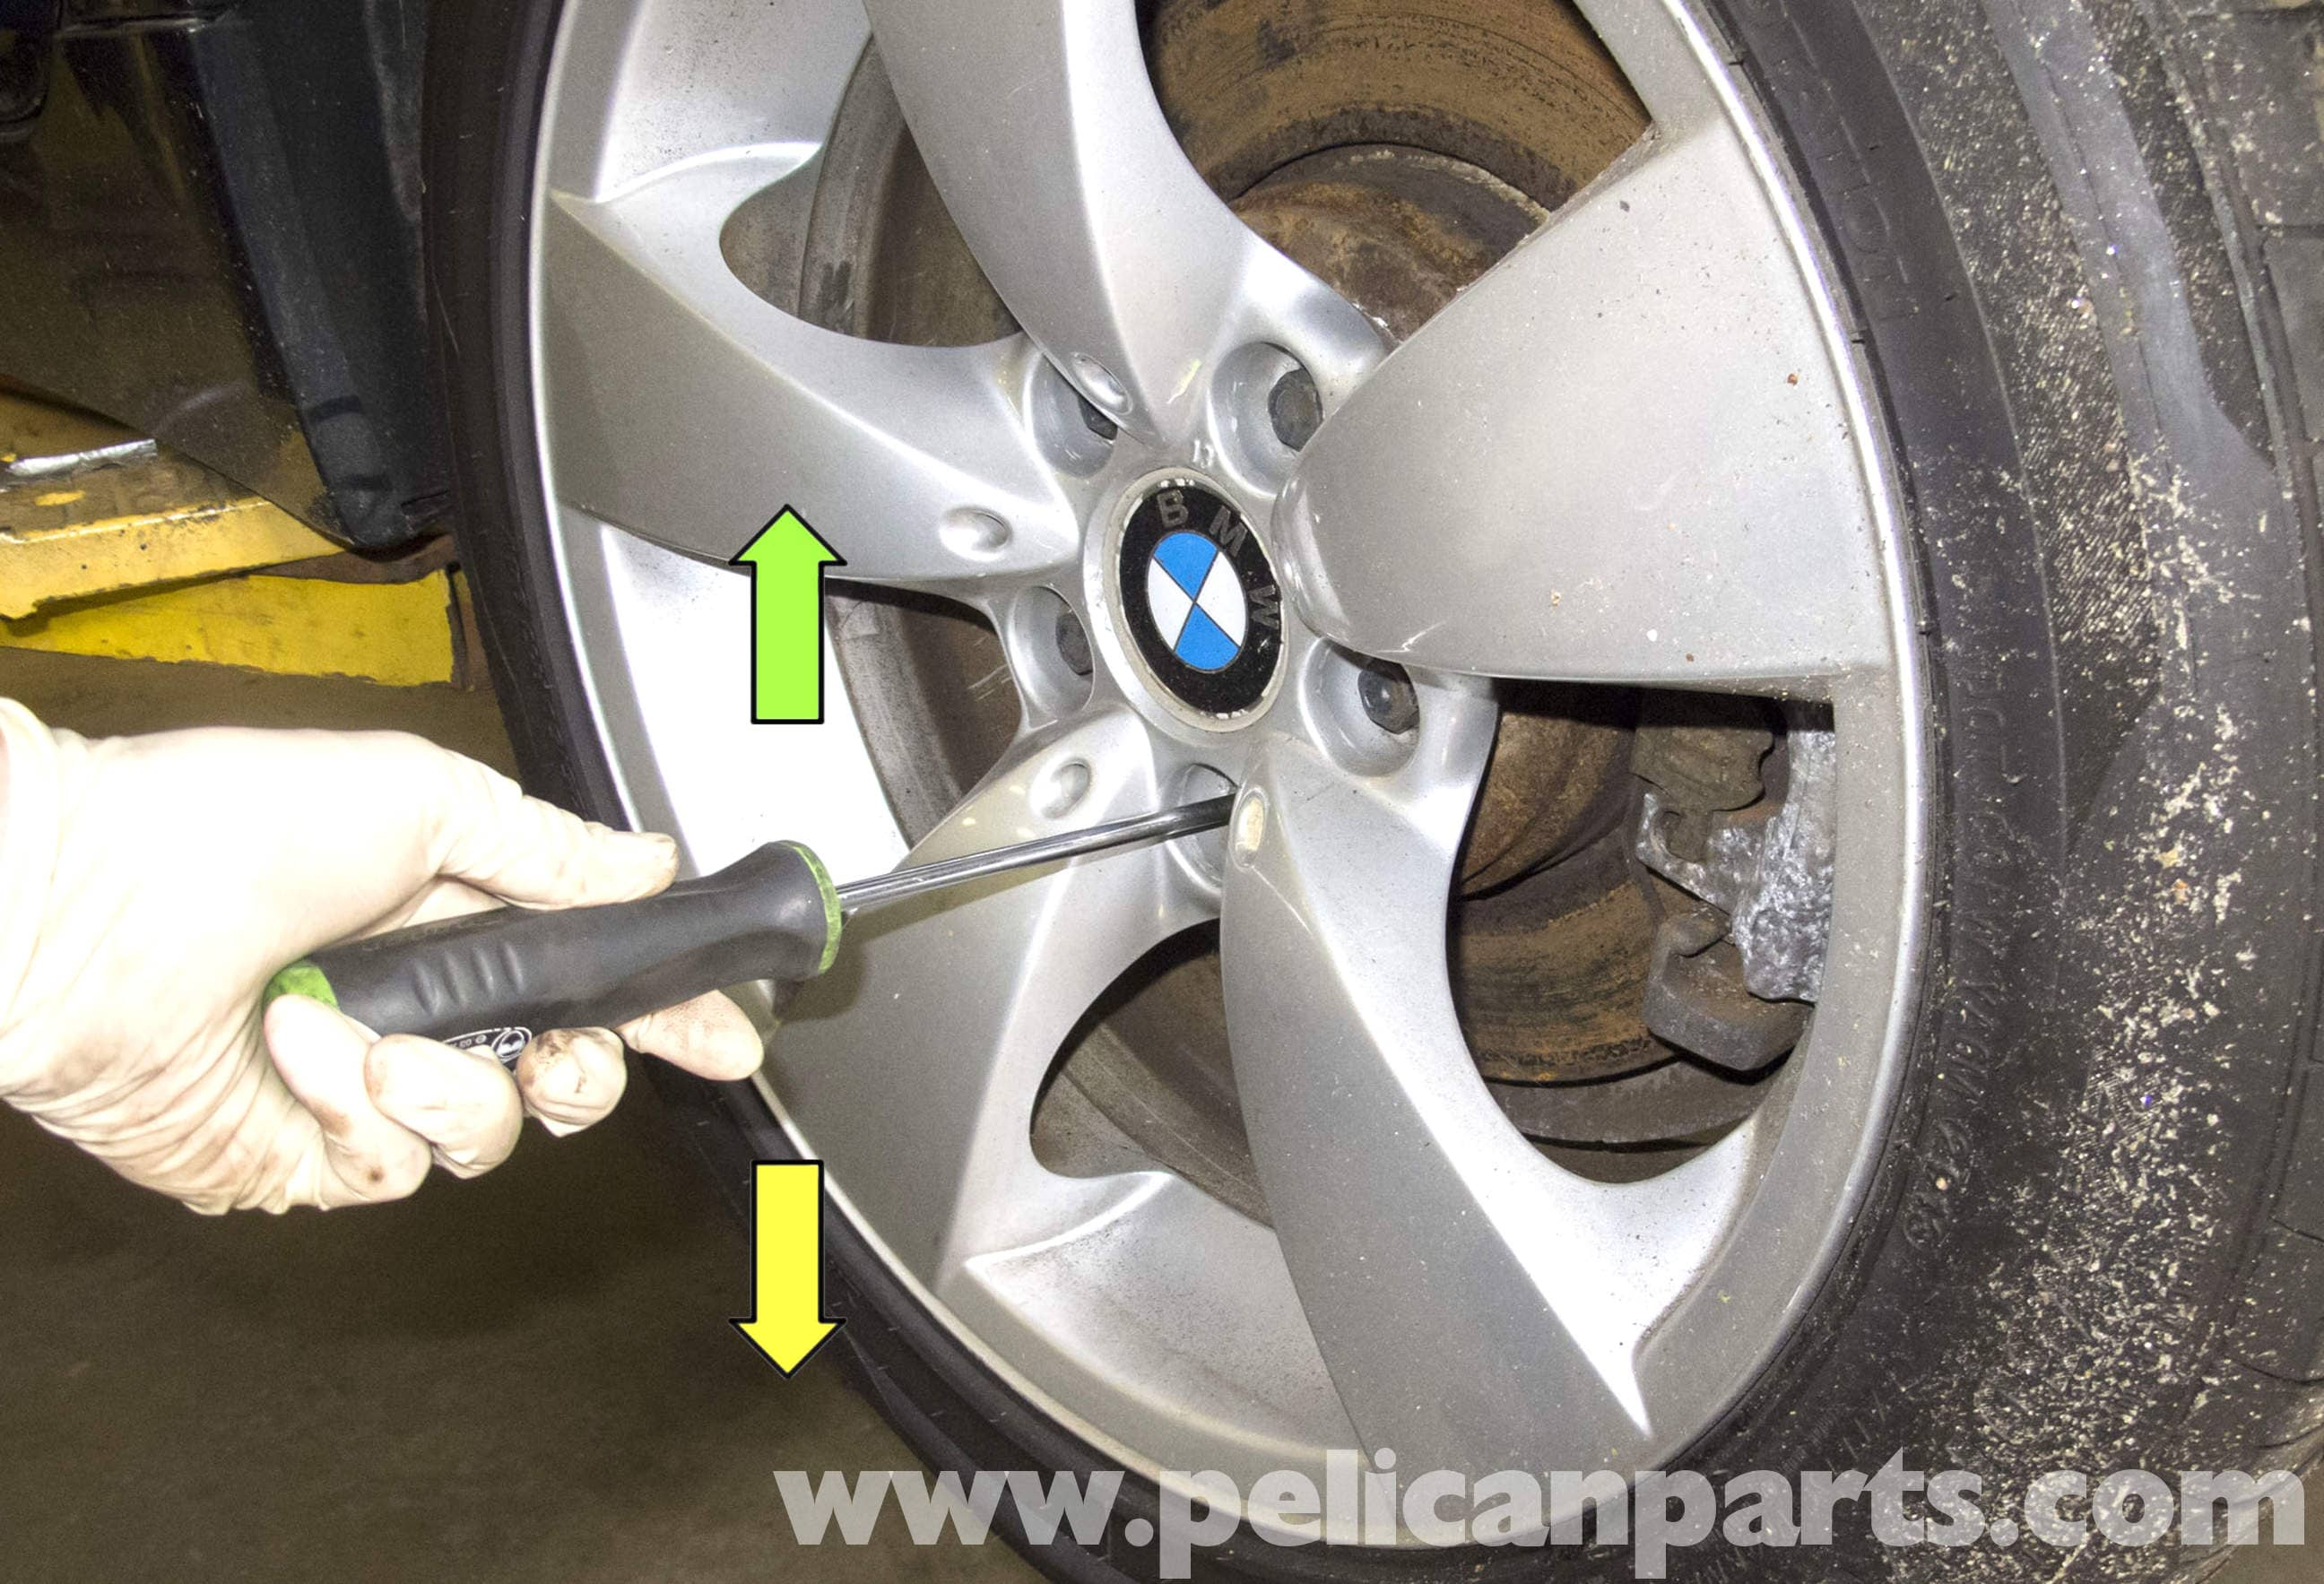 Bmw E60 5 Series Parking Brake Adjustment 2003 2010 Pelican Parts Technical Article